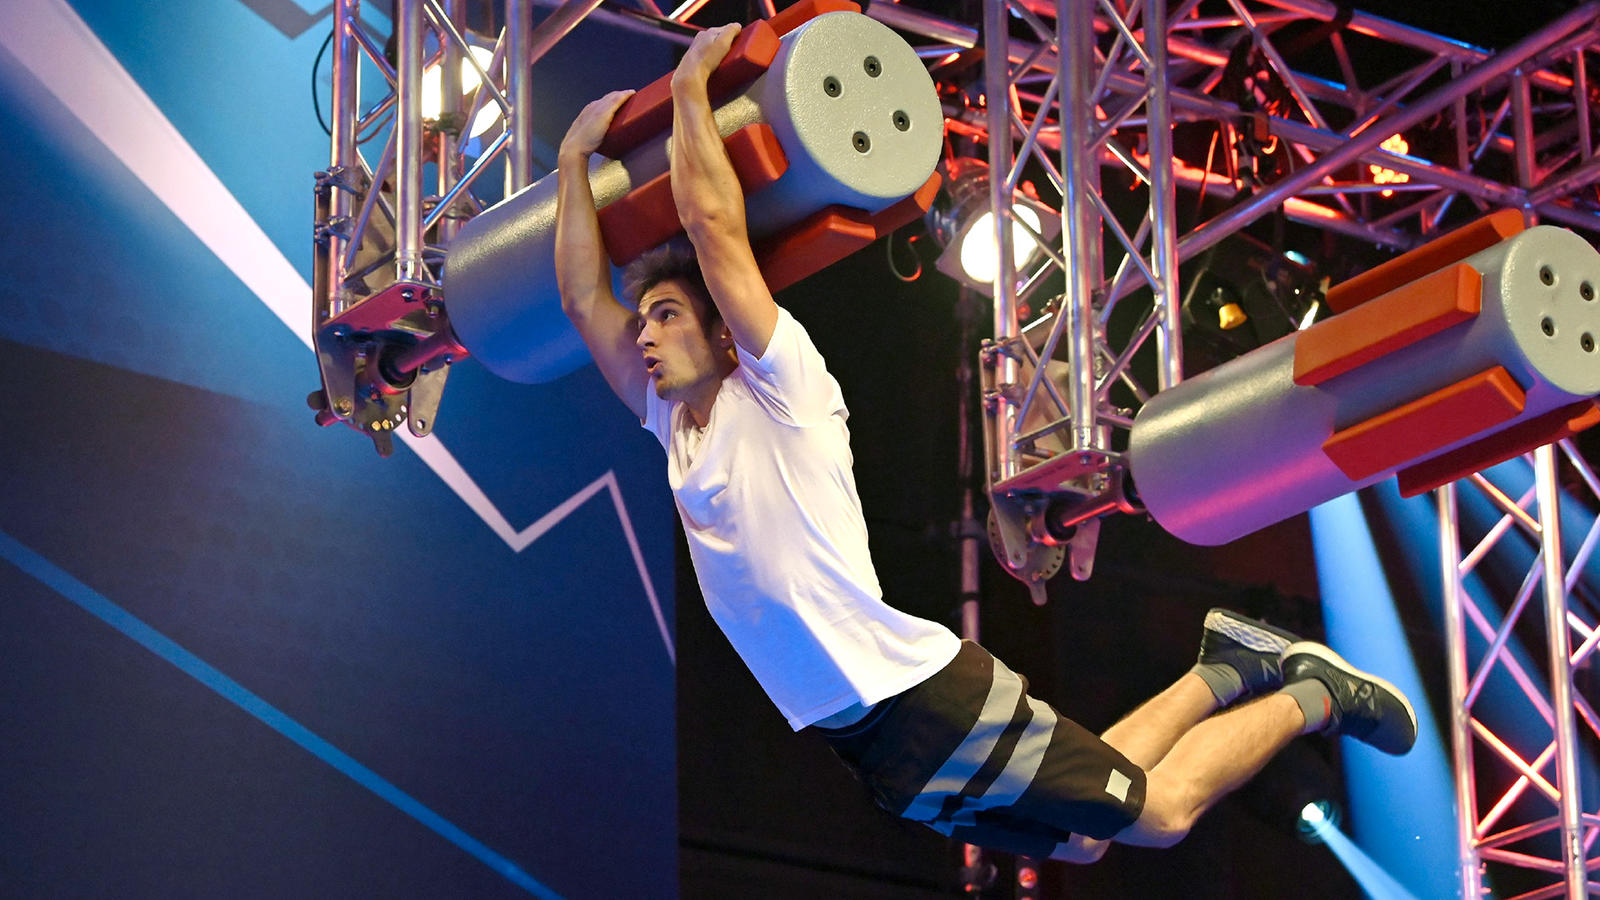 Ninja Warrior Germany 2021